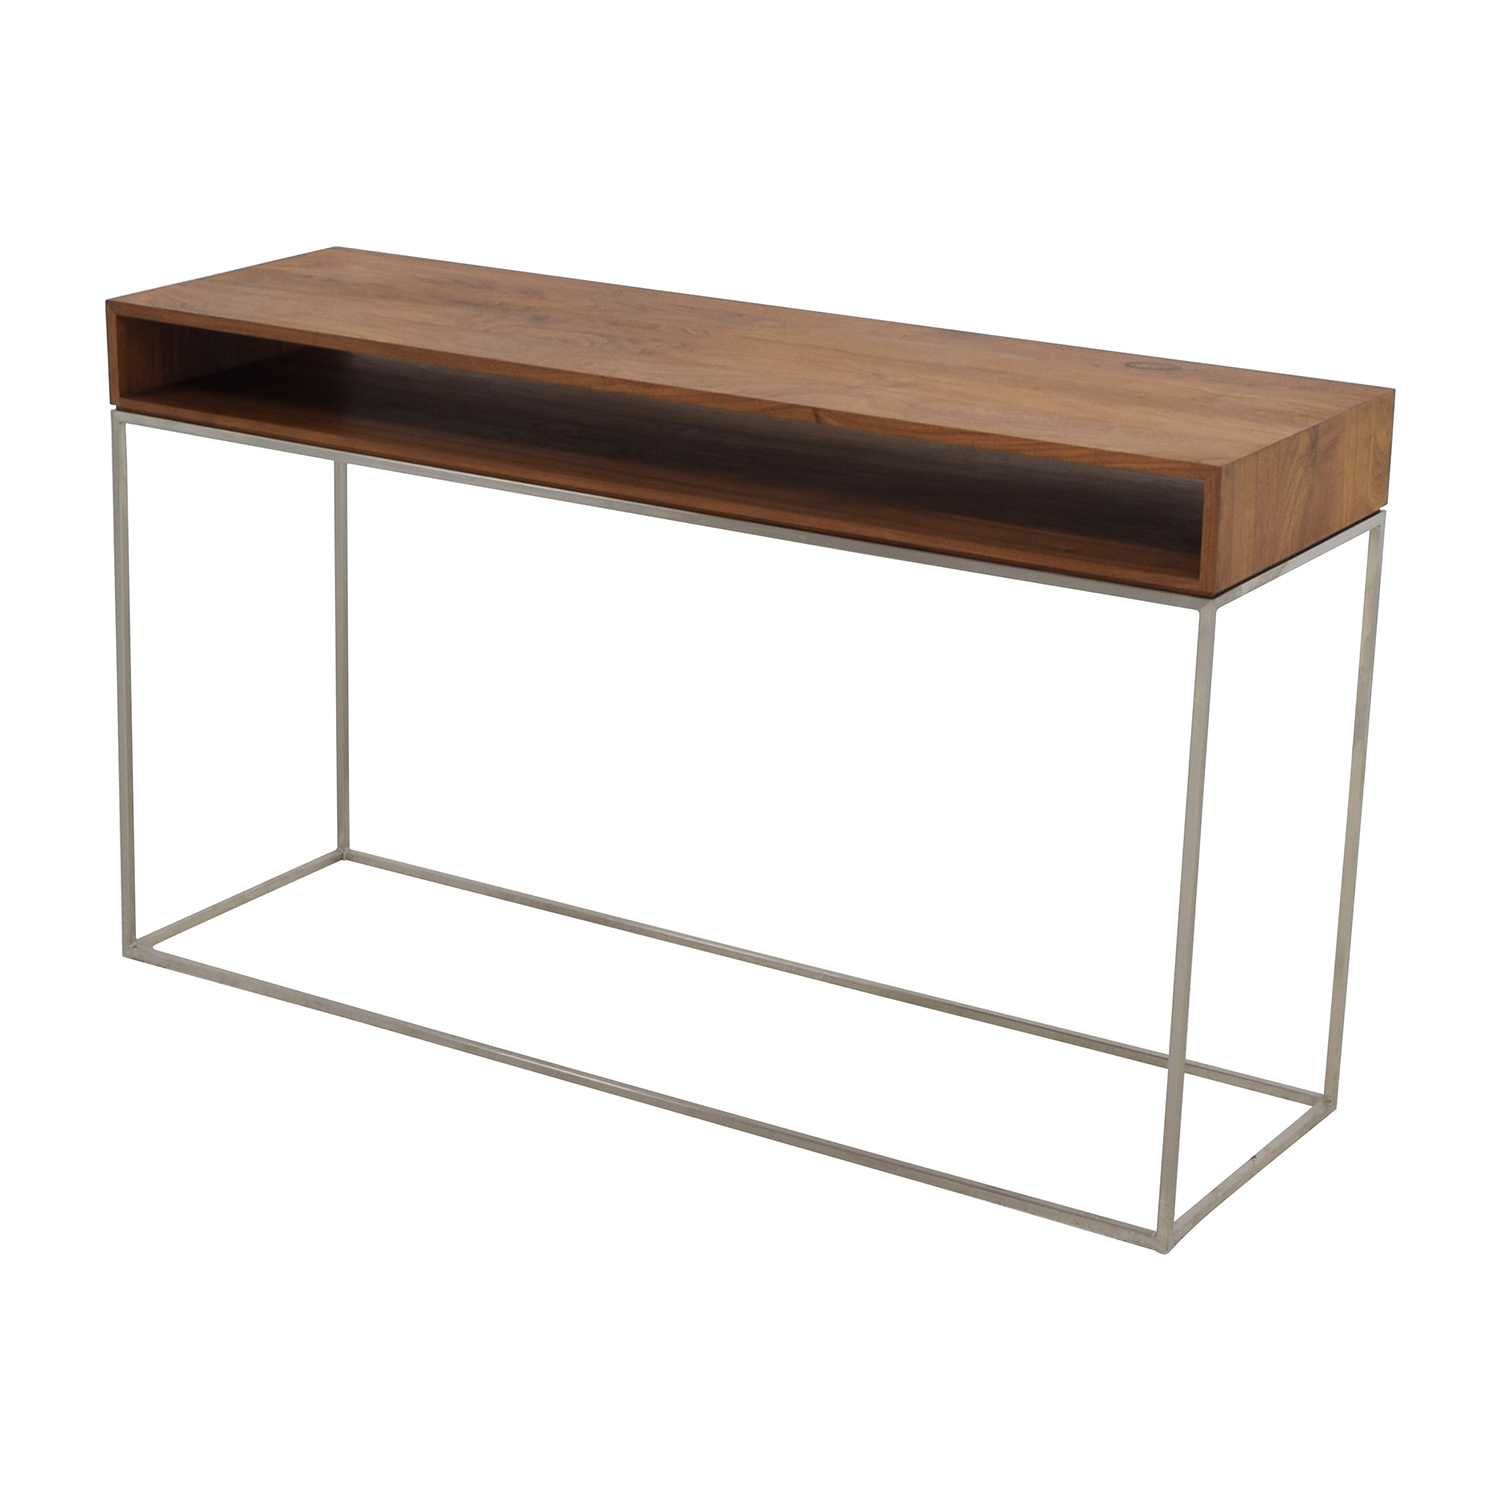 70 Off Cb2 Cb2 Wood And Metal Frame Console Table Tables Tall Narrow Pertaining To Frame Console Tables (Photo 12 of 30)